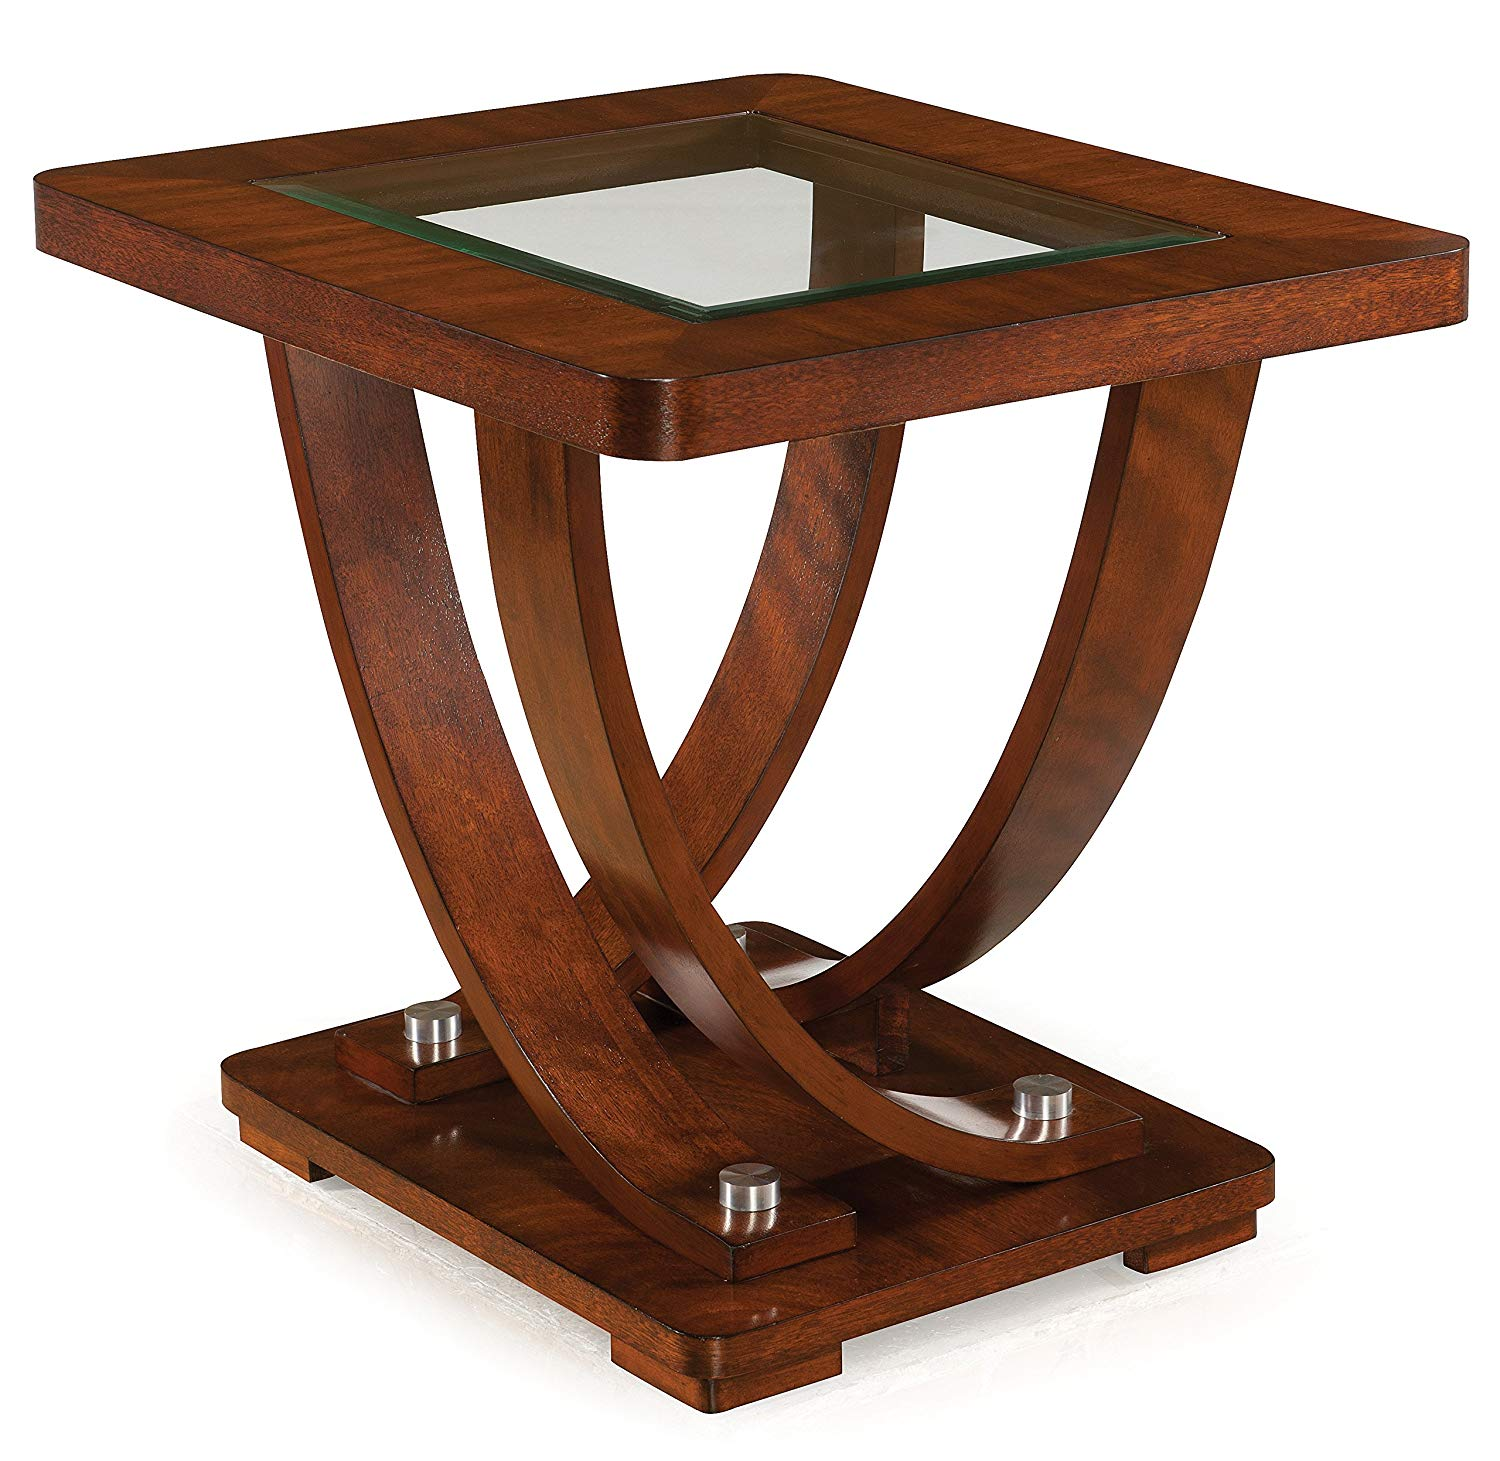 magnussen pavilion contemporary medium hawthorne glass top accent table brown rectangular end kitchen dining monarch hall console pier one rattan height tables white side for